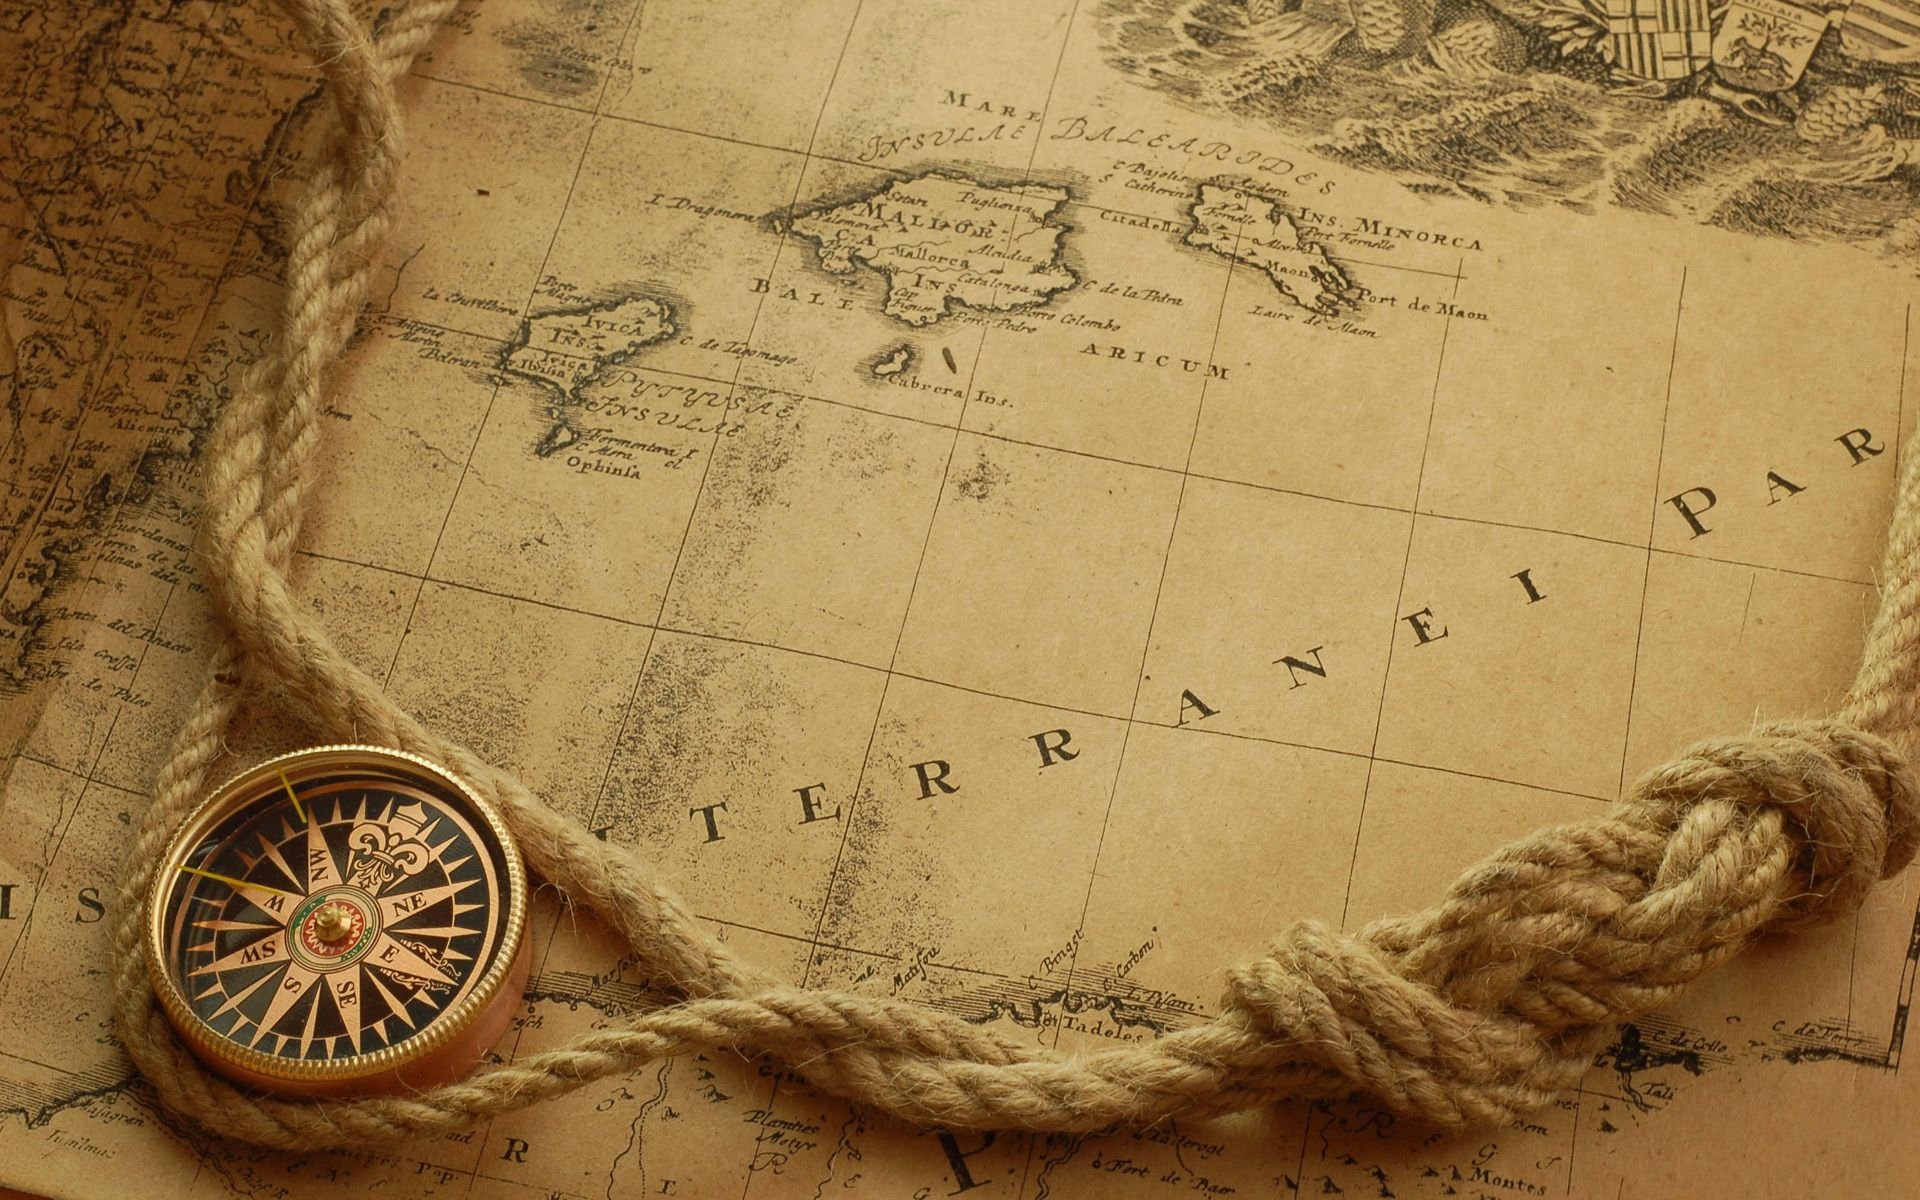 creative compass rope guidance navigation exploration nautical map discovery travel adventure geography longitude paper retro voyage old latitude